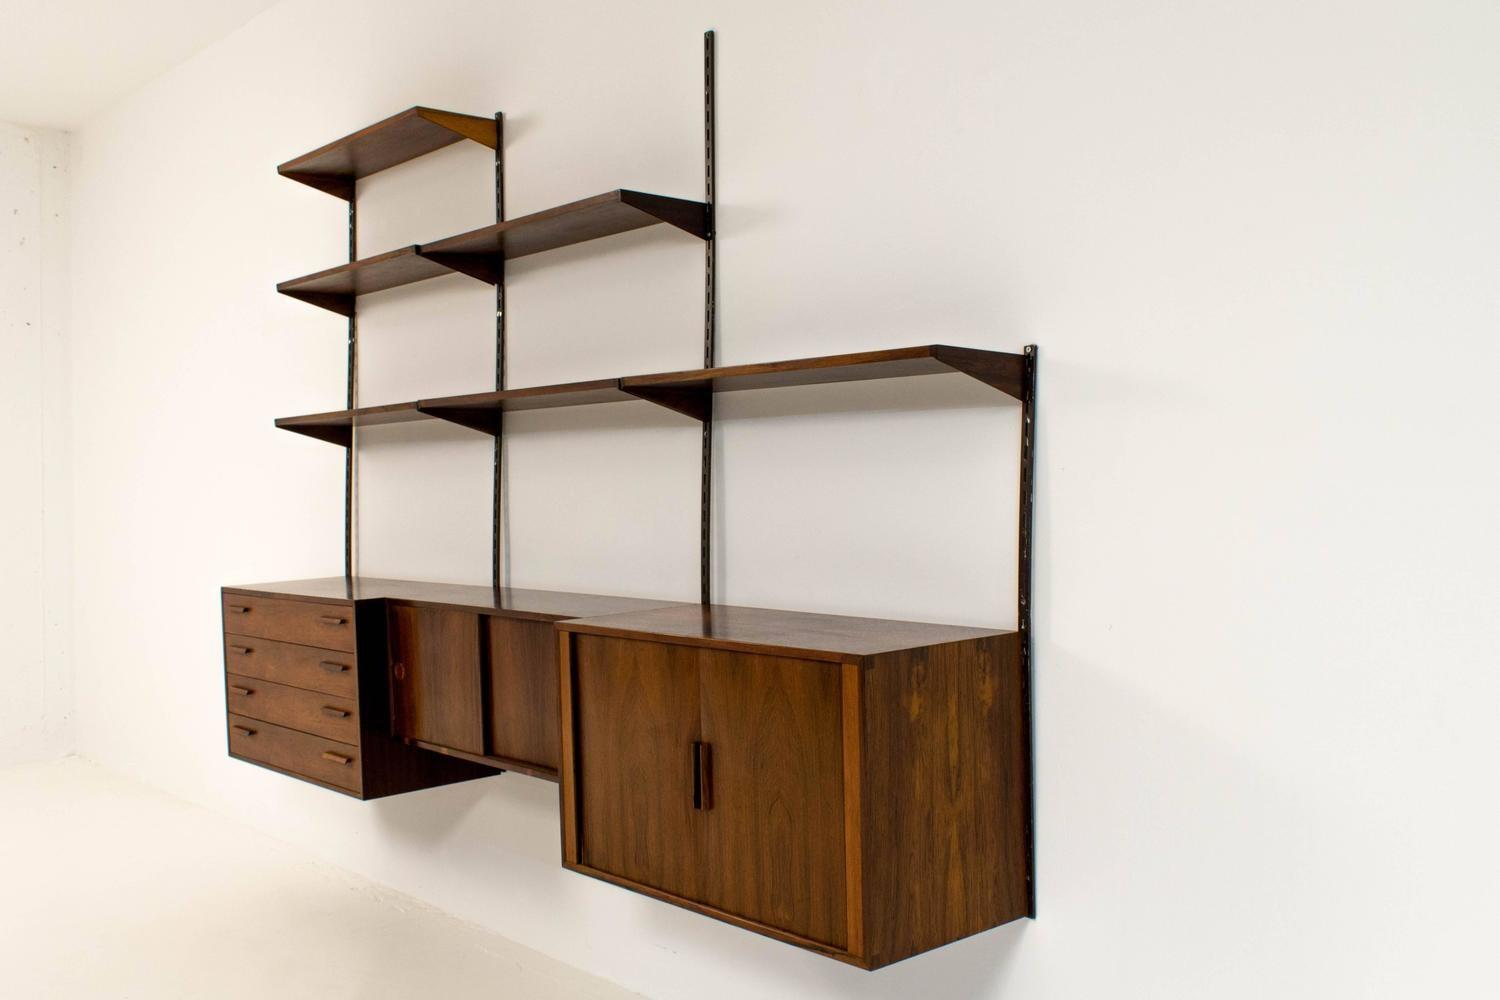 Wall Mounted Shelving Units Kbdphoto